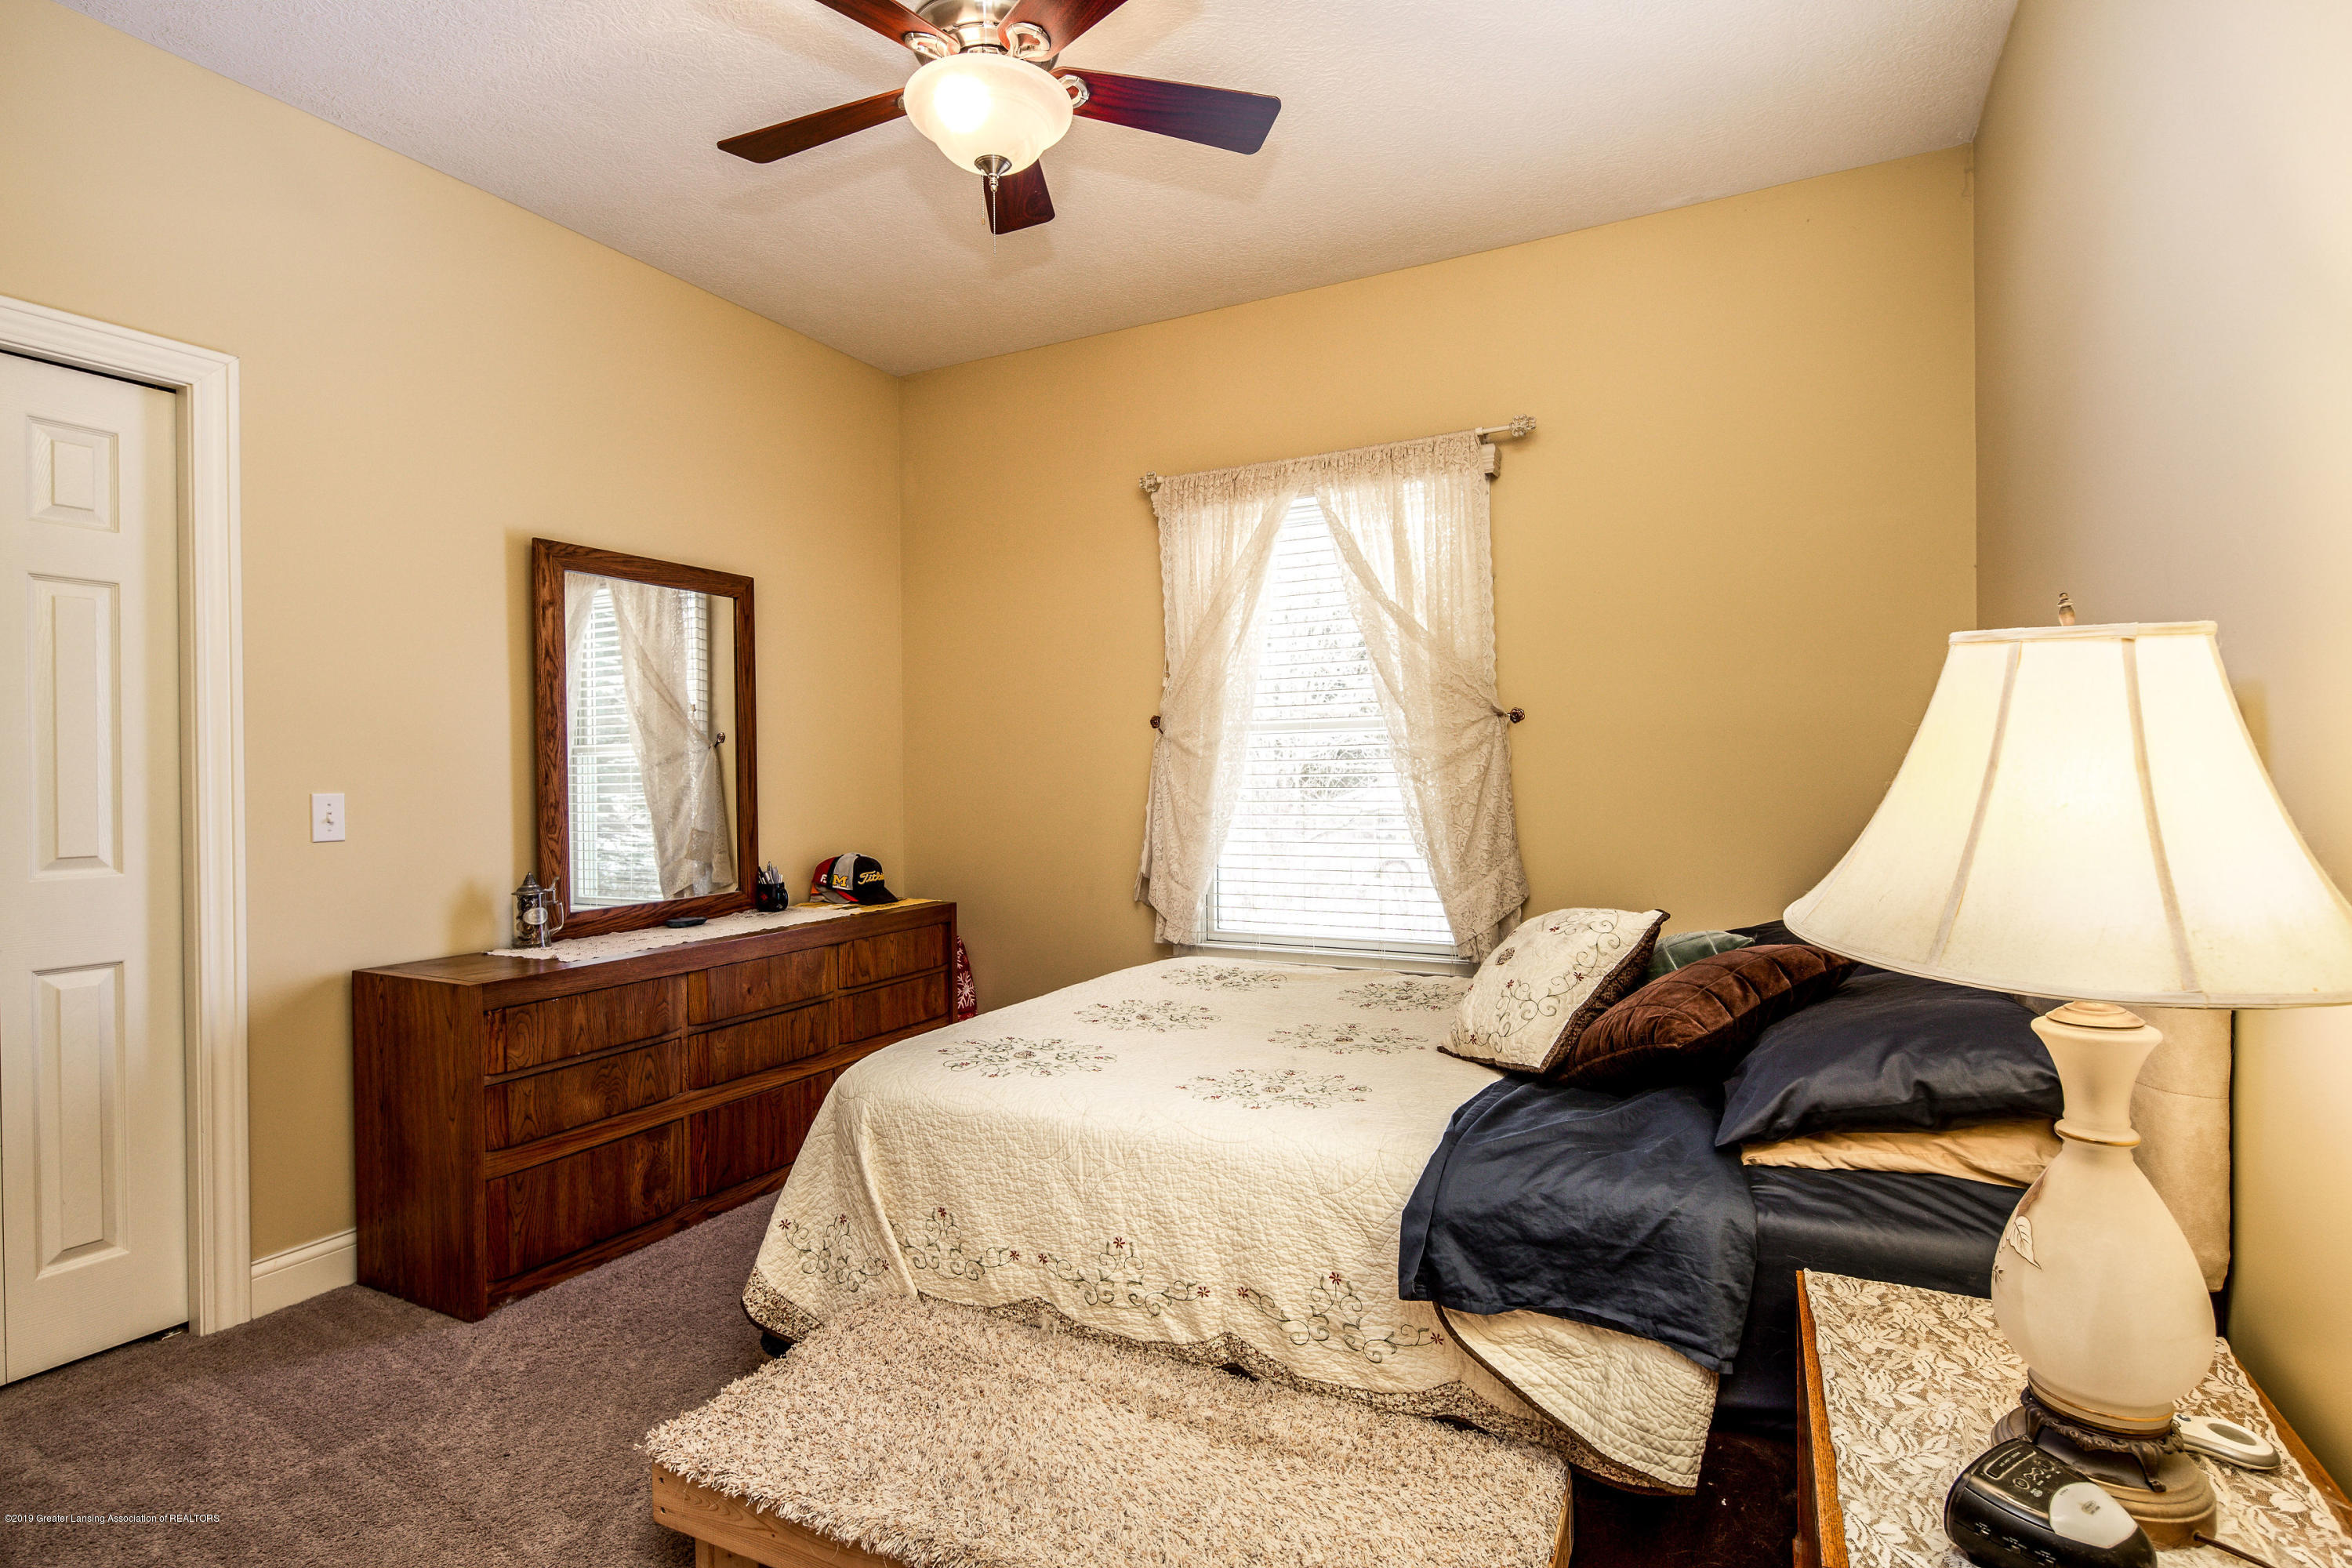 655 S Waverly Rd - Guest Room 1 - 15